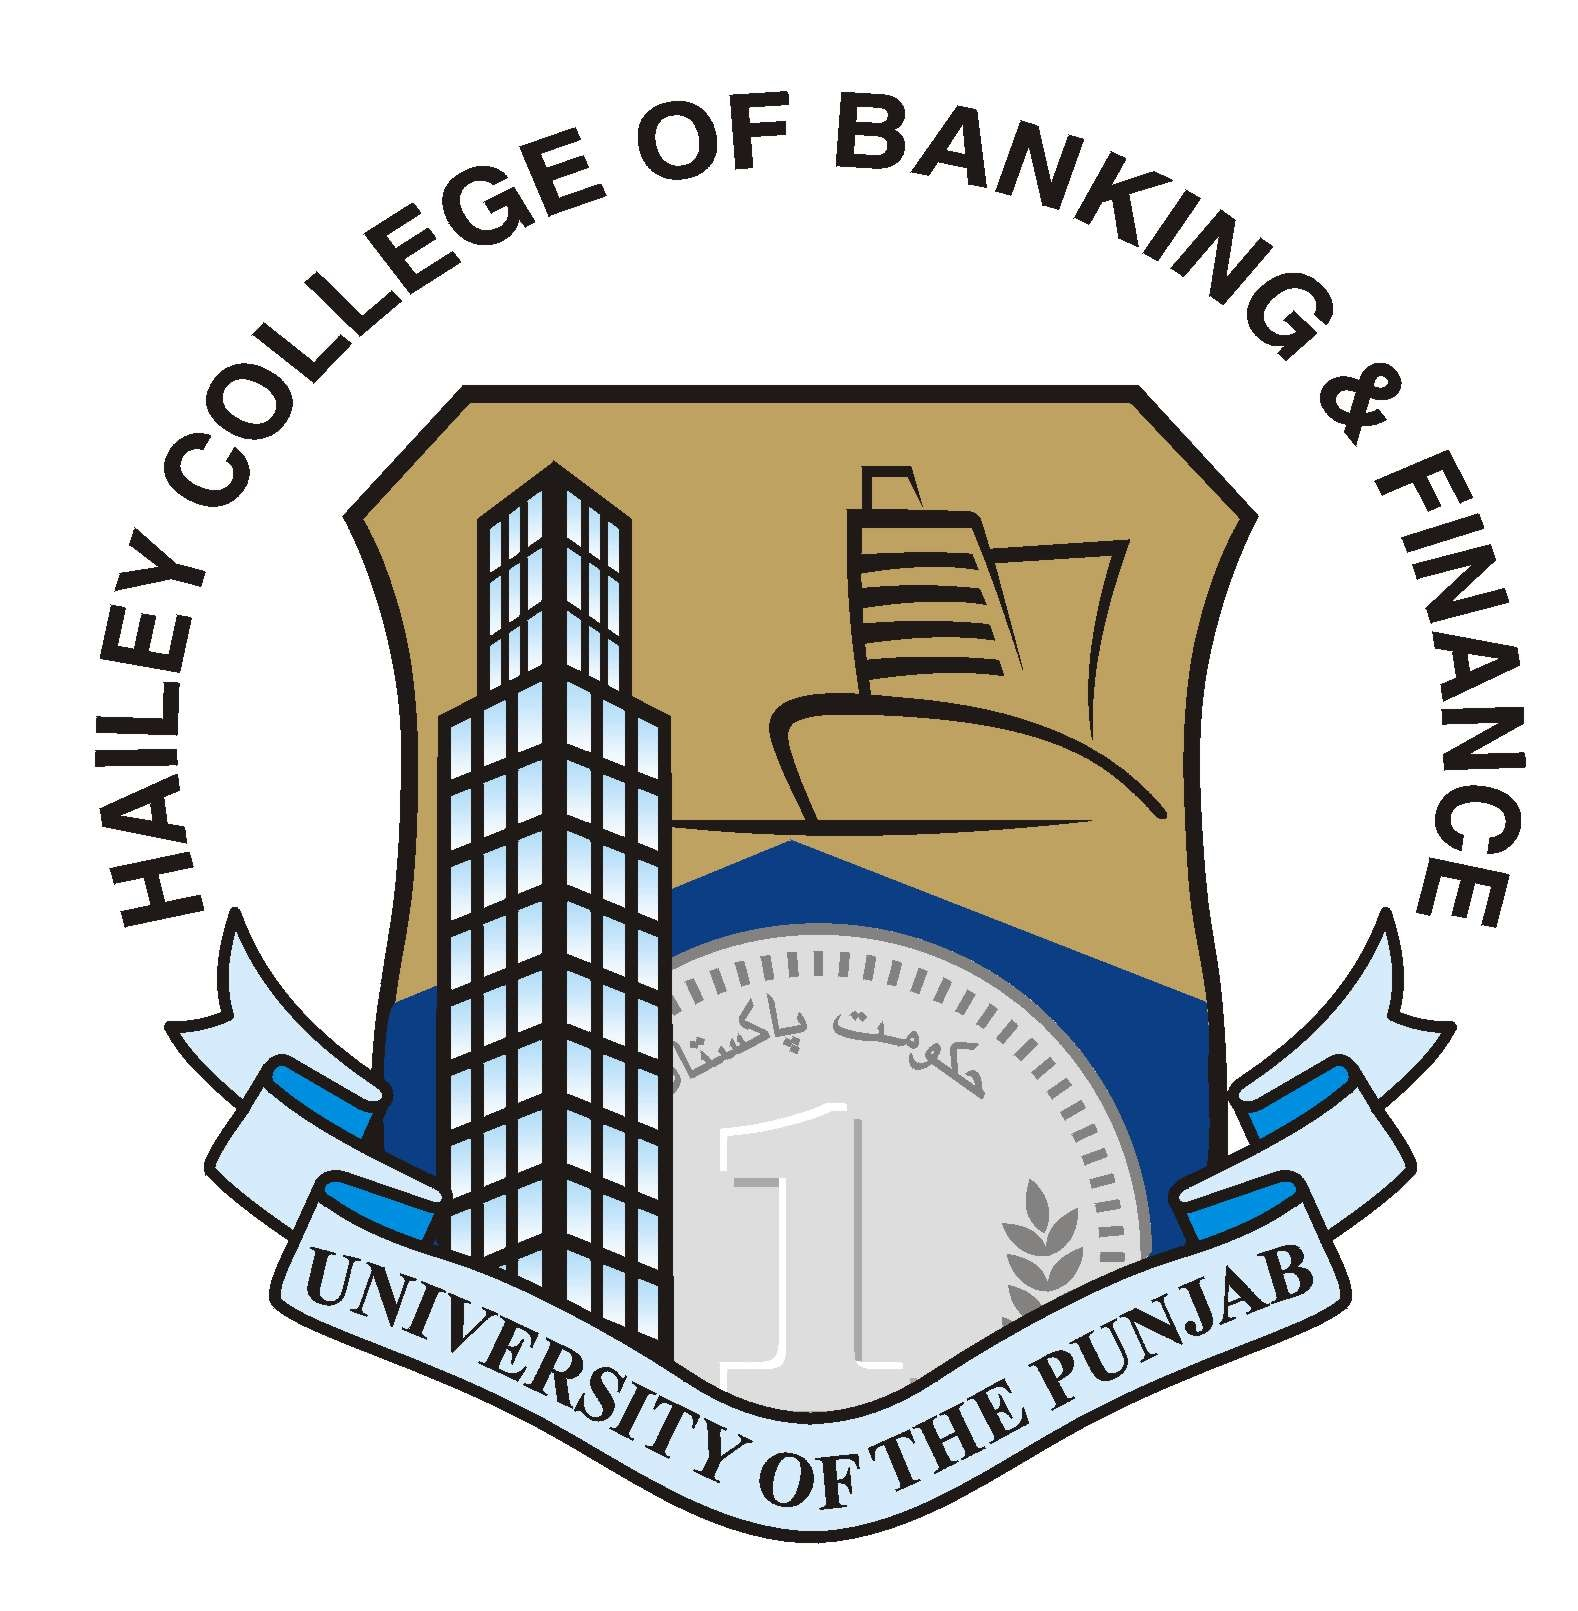 Hailey College Of Banking And Finance BBA, MBA Admissions 2018